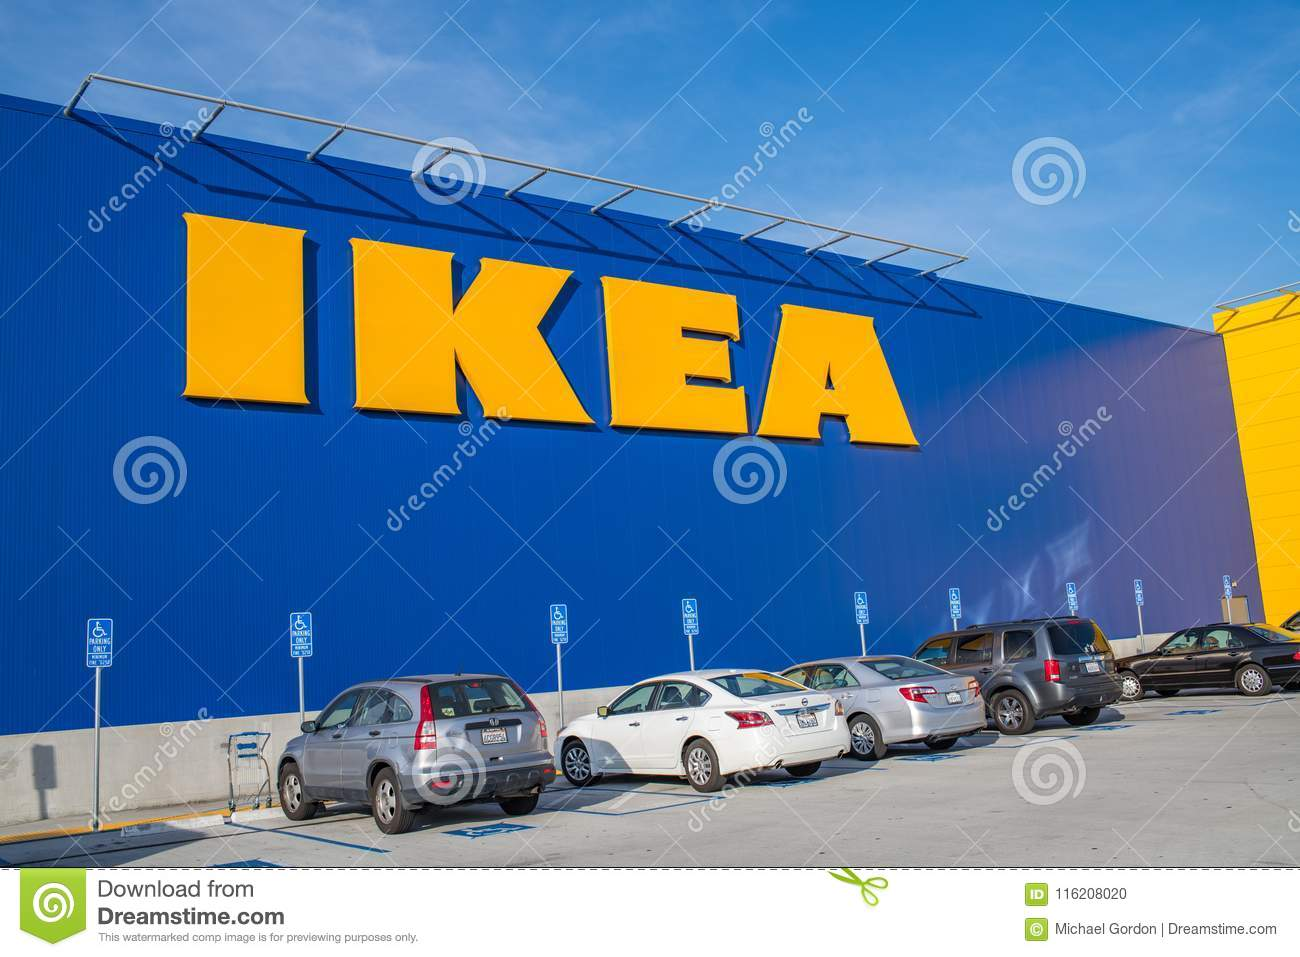 Download Exterior Of An Ikea Store Editorial Image. Image Of Furniture    116208020